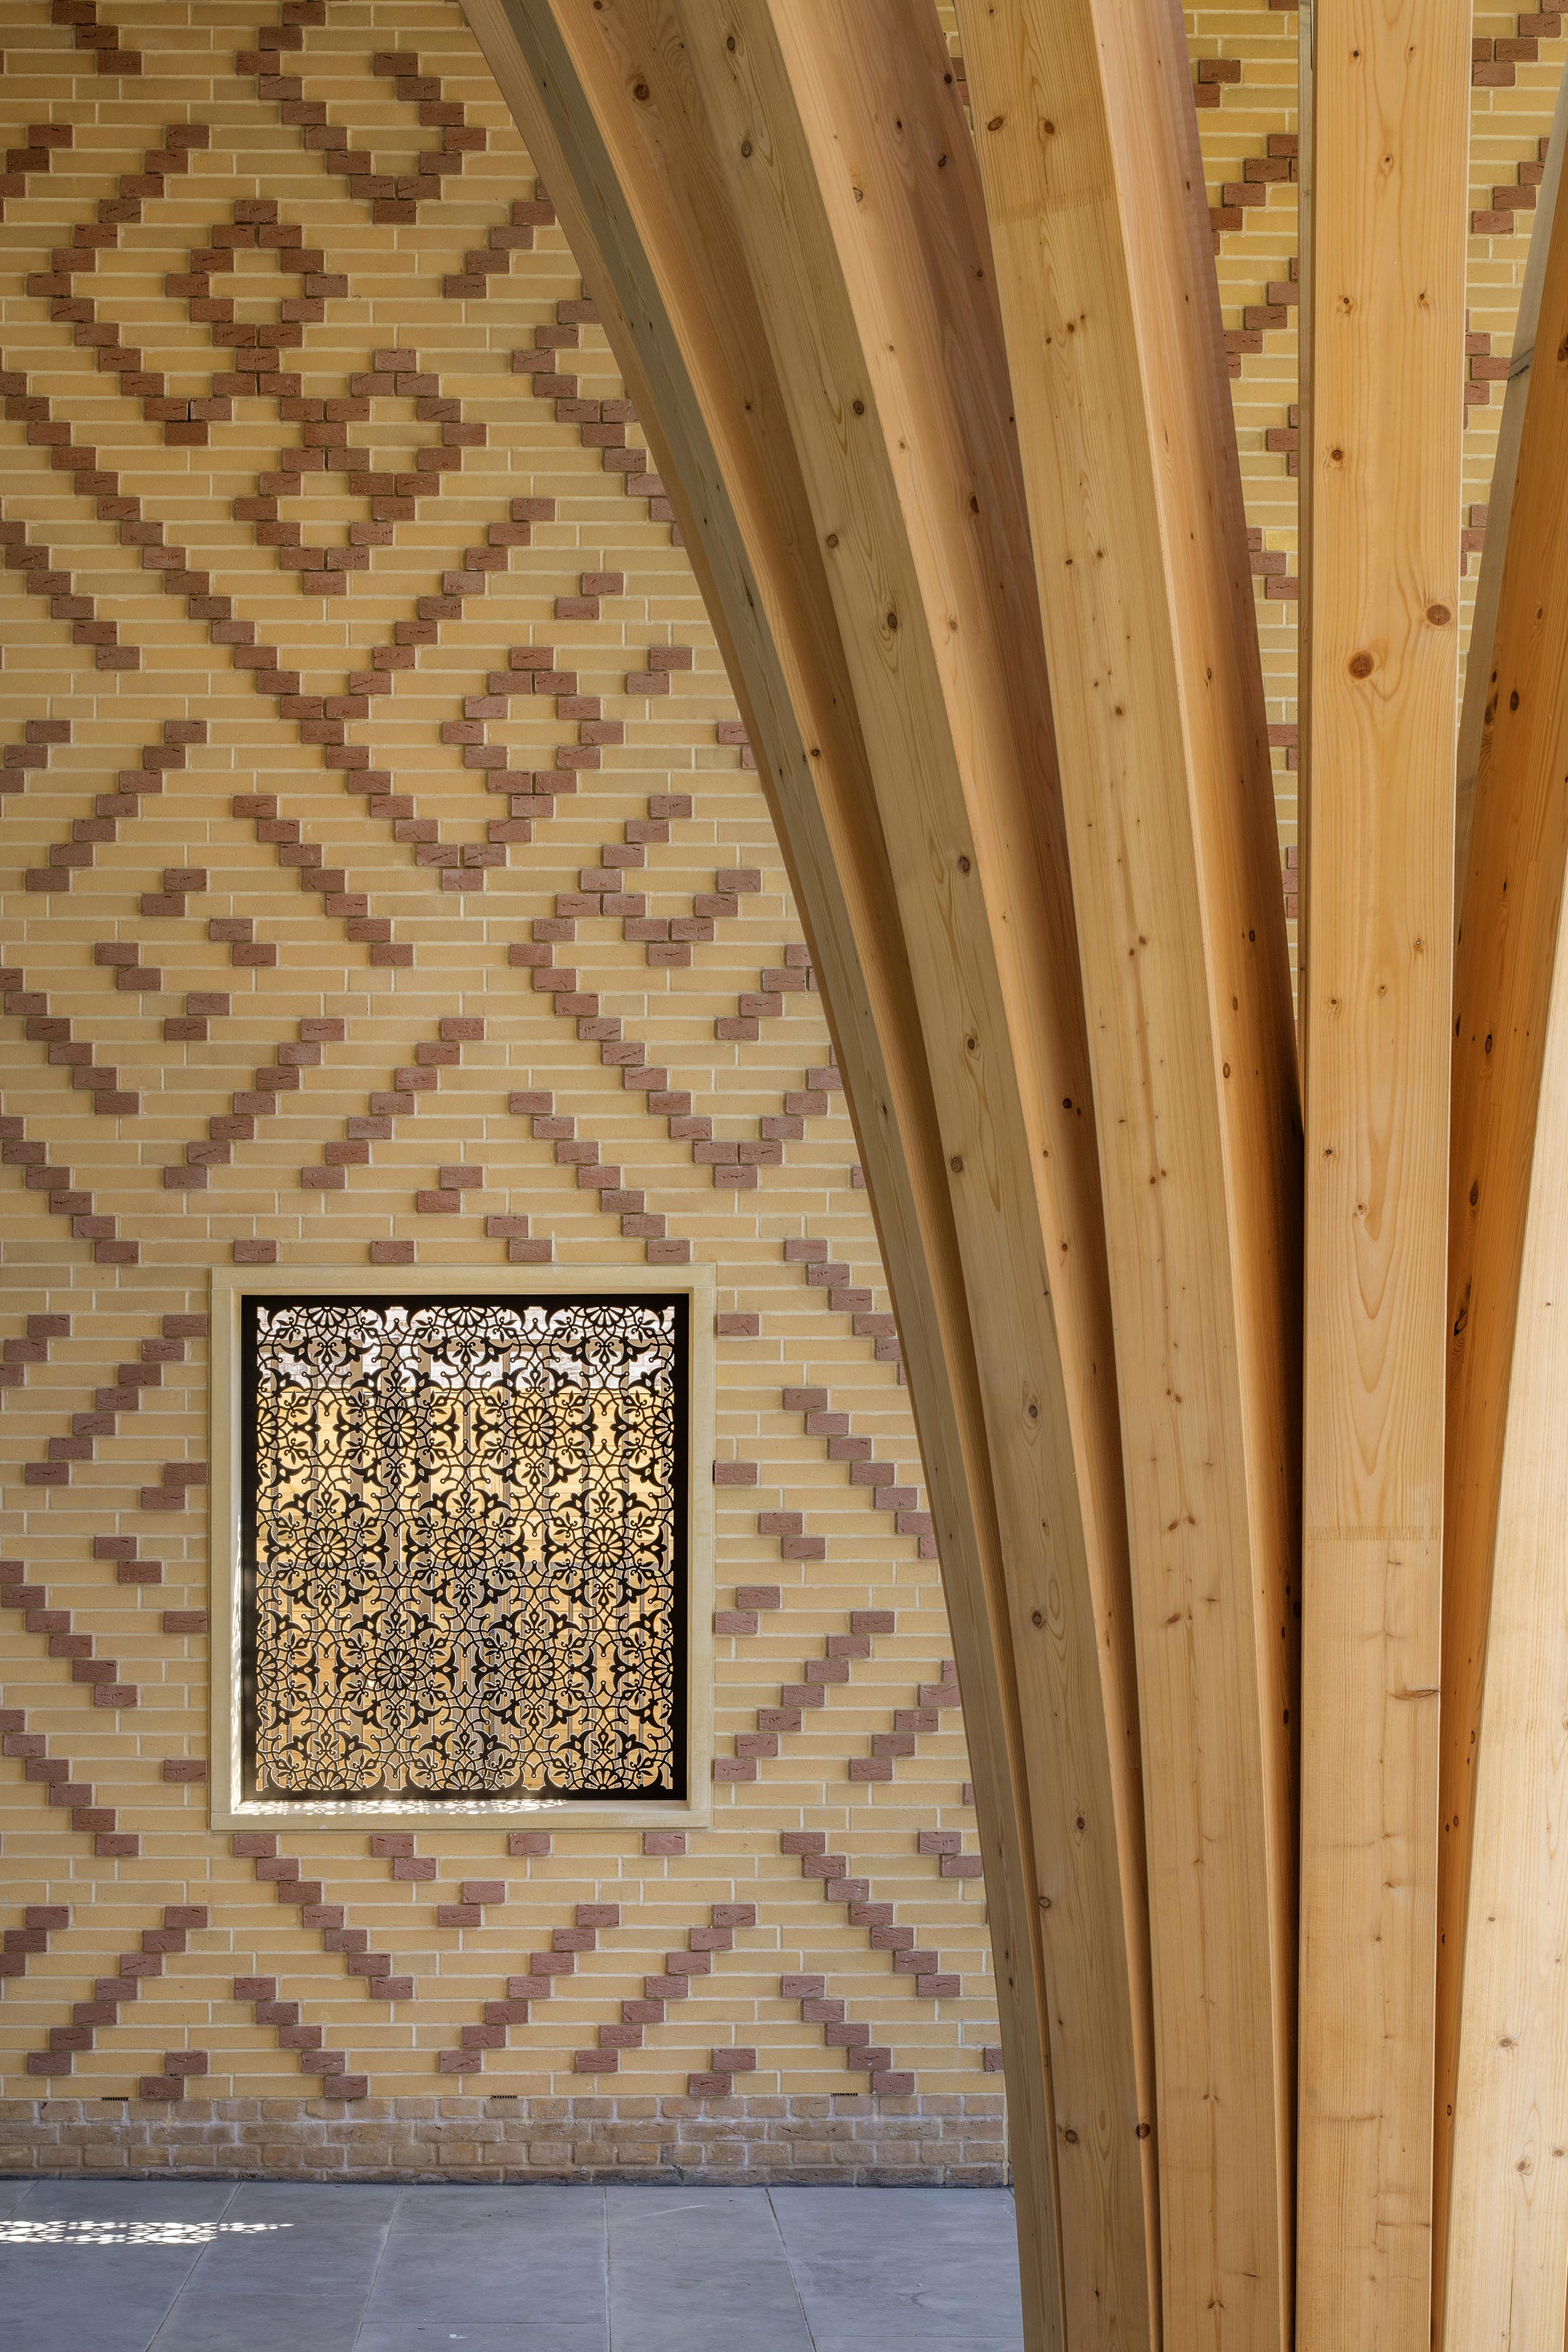 Cambridge Mosque Decorative screen detail by Marks Barfield architects, photography by Morley von Sternberg